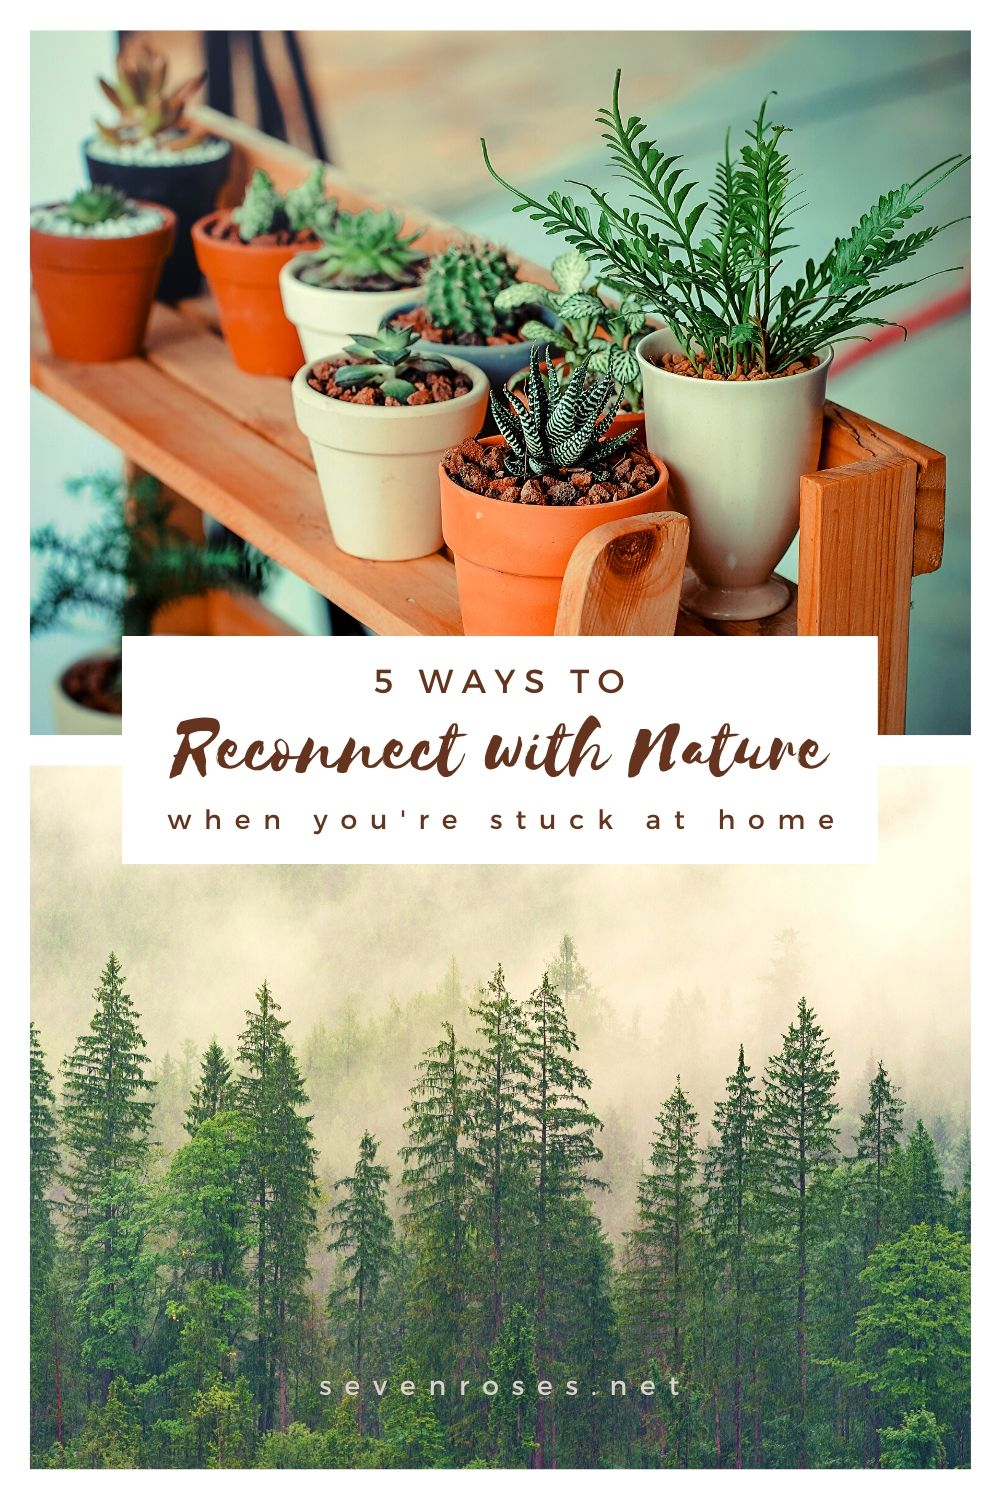 5 ways to reconnect with nature when you're stuck at home